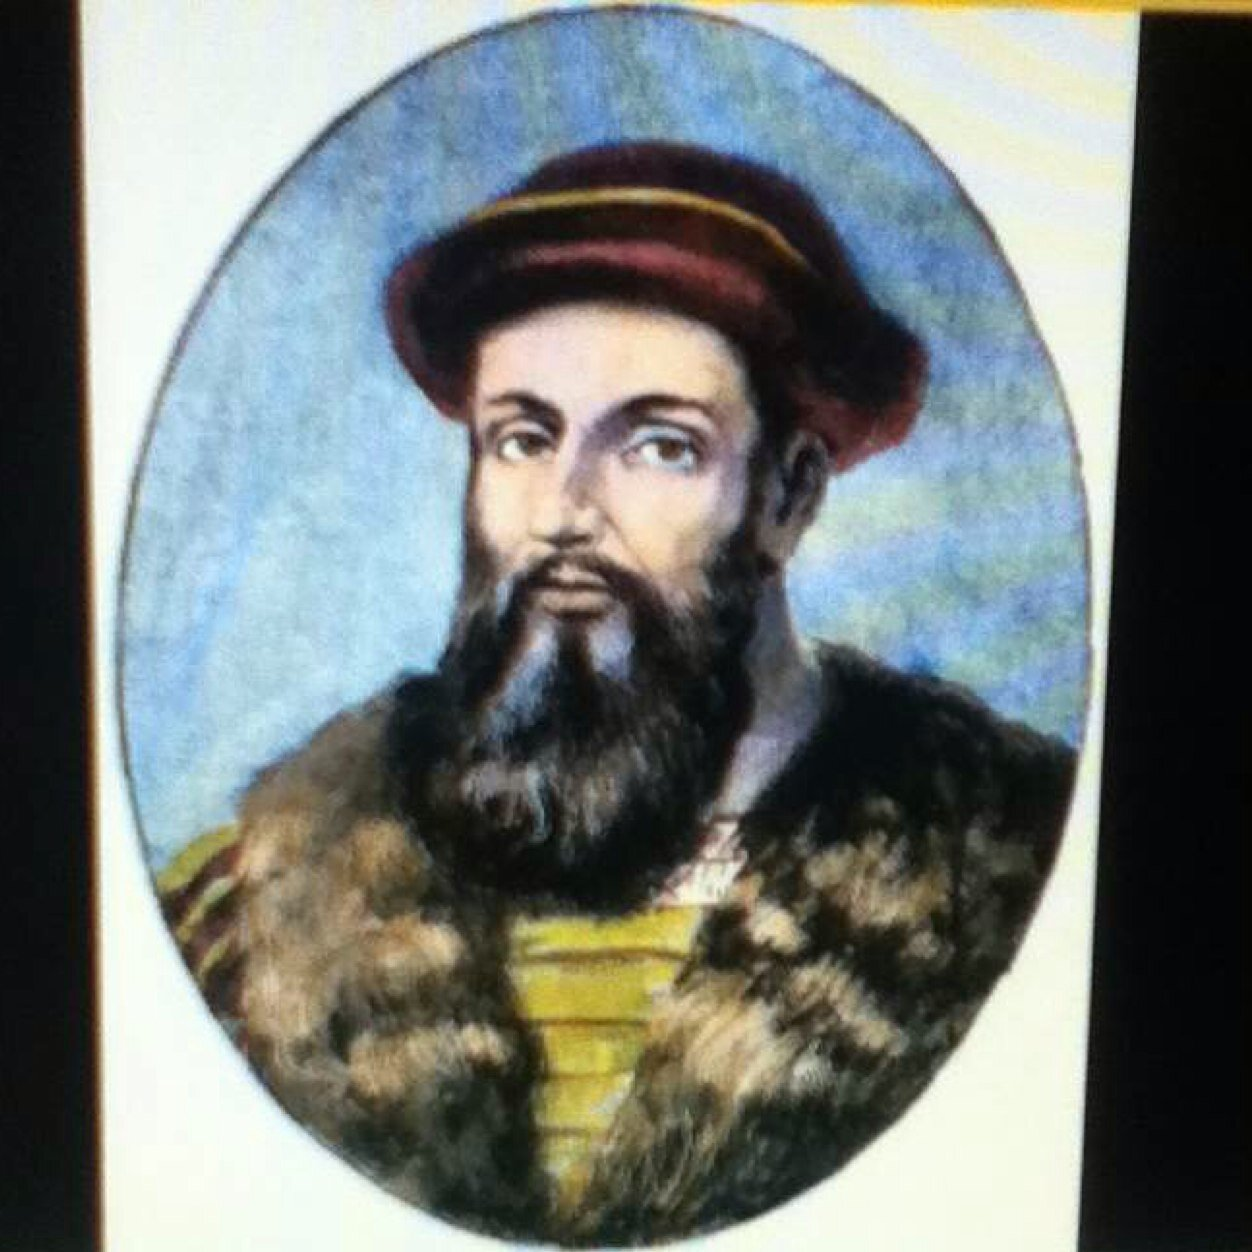 a biography and life work by ferdinand magellan an explorer from portugal Ferdinand magellan was born in villa real or oporto, portugal in 1480, of noble parentage magellan's parents died when he was only 10, and he was reared as a page in the royal household magellan went on his first voyage on the sea at the age of 25, in 1505, when he was sent to india to install francisco de almeida as the portuguese viceroy.